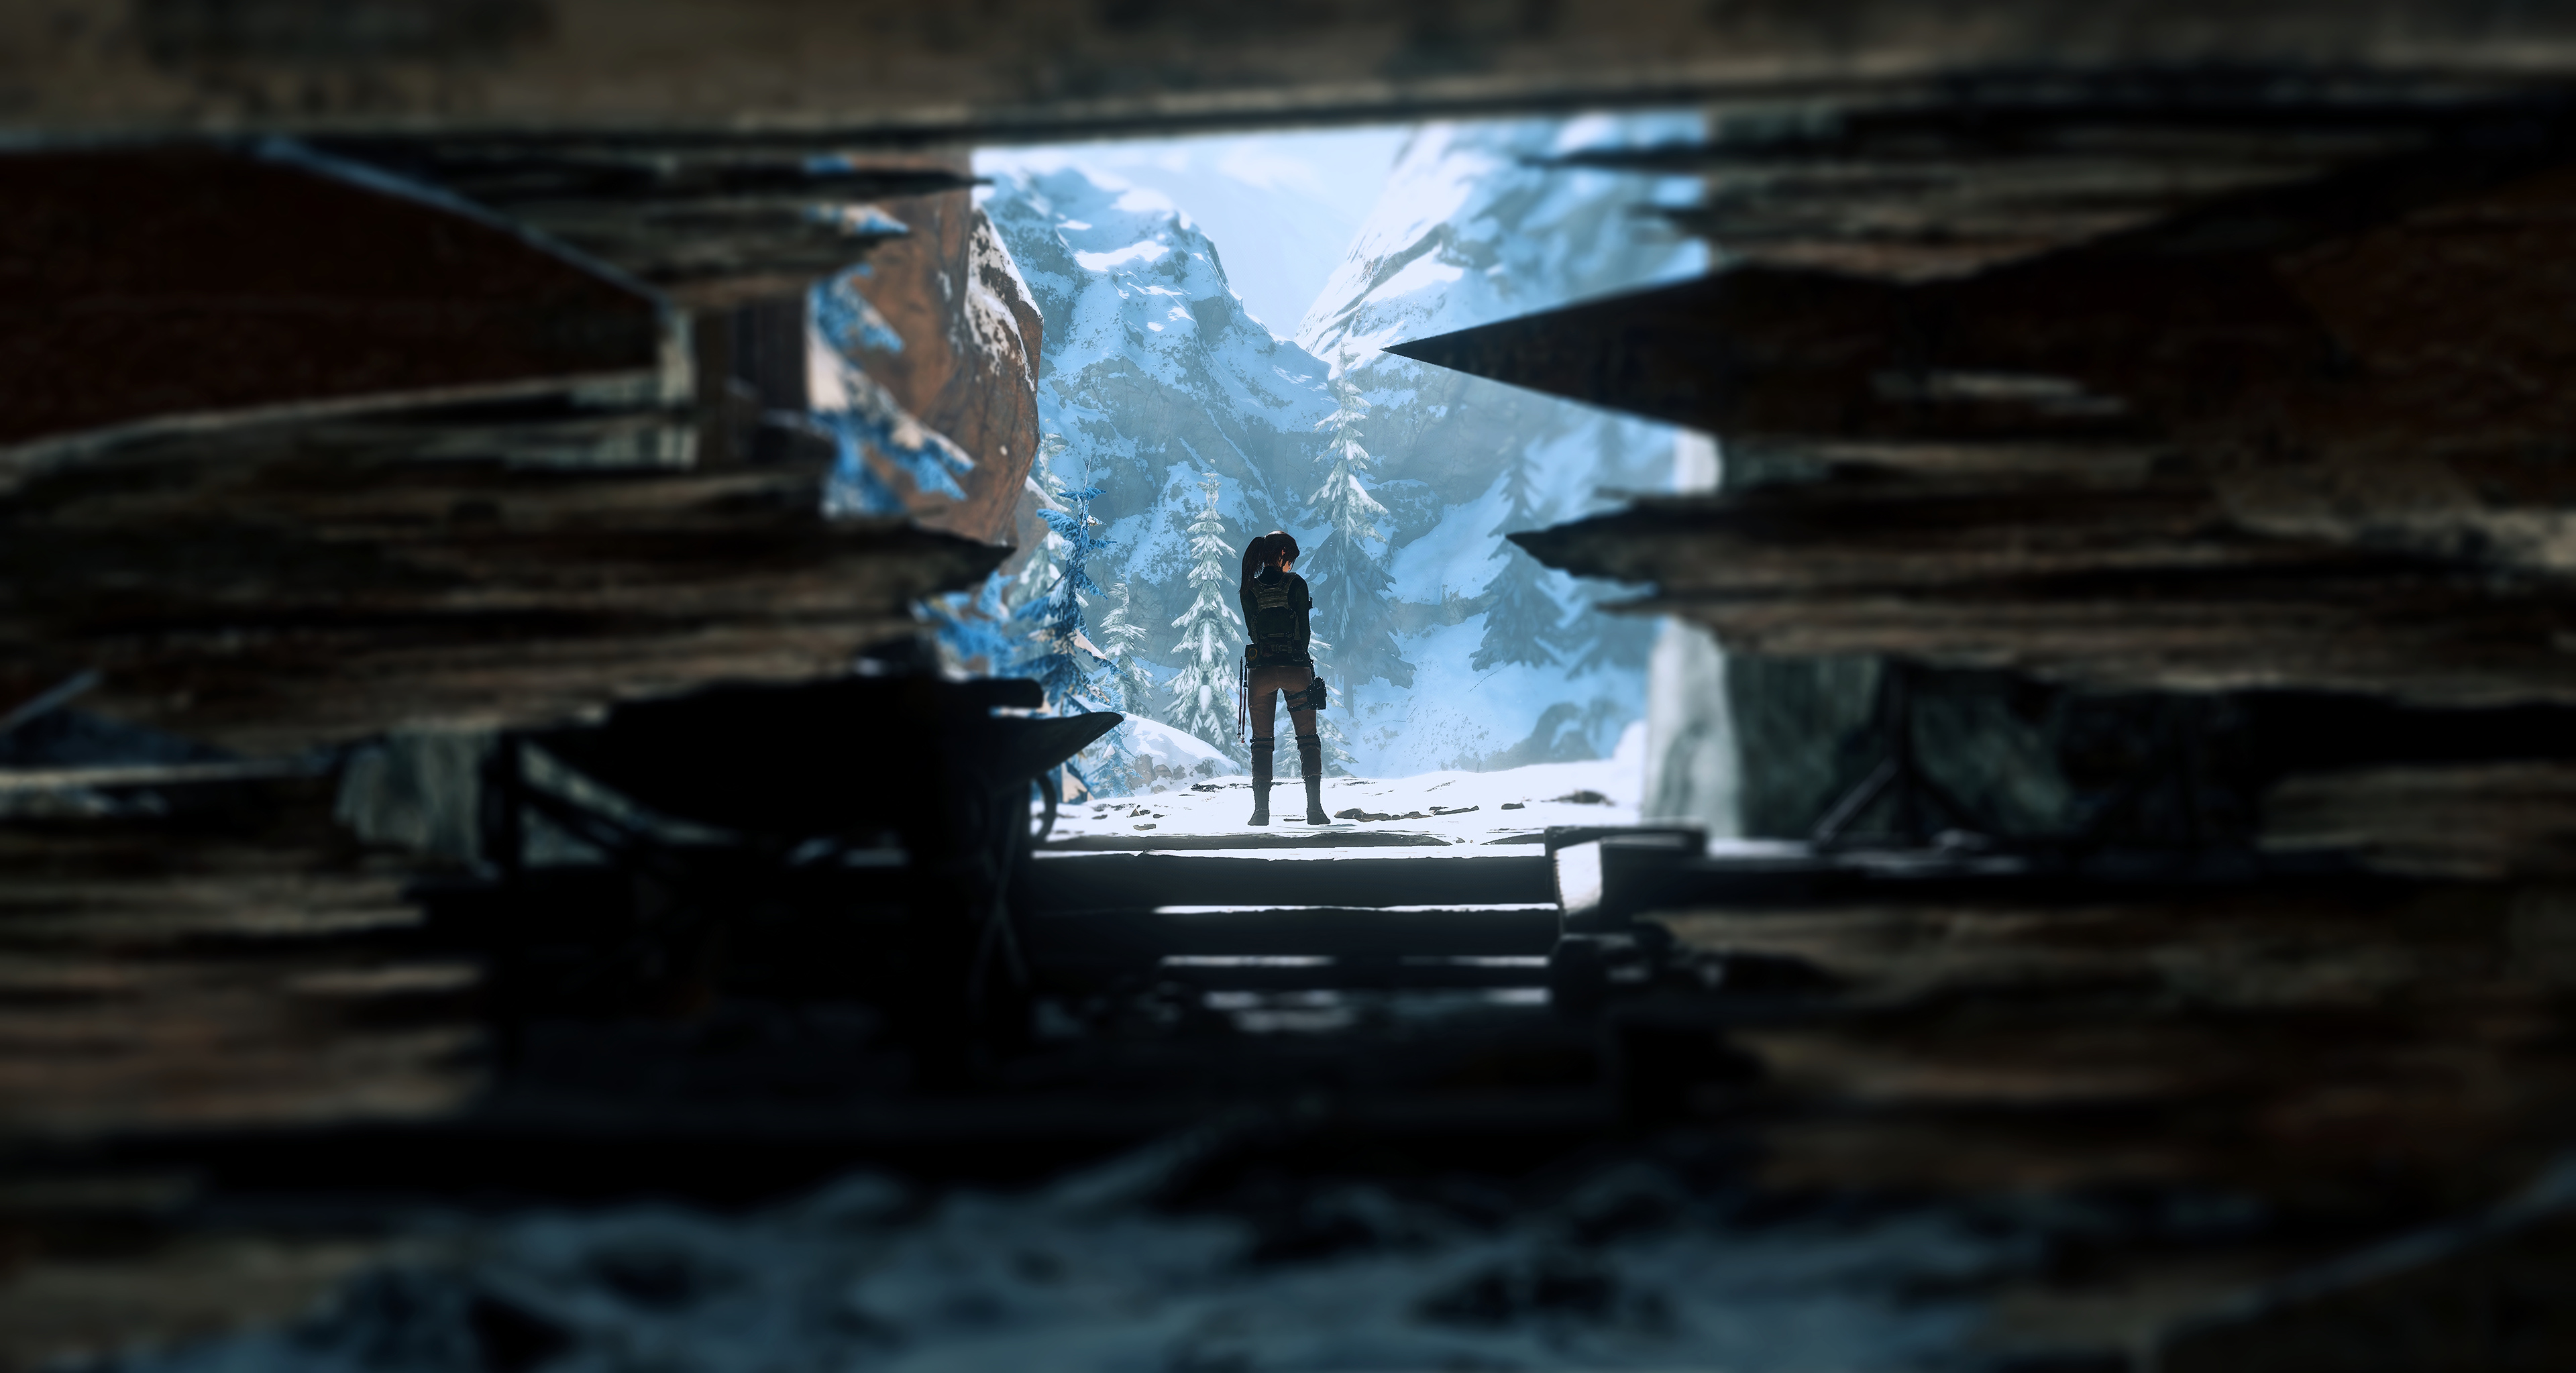 Rise Of The Tomb Raider 4k Hd Games 4k Wallpapers Images